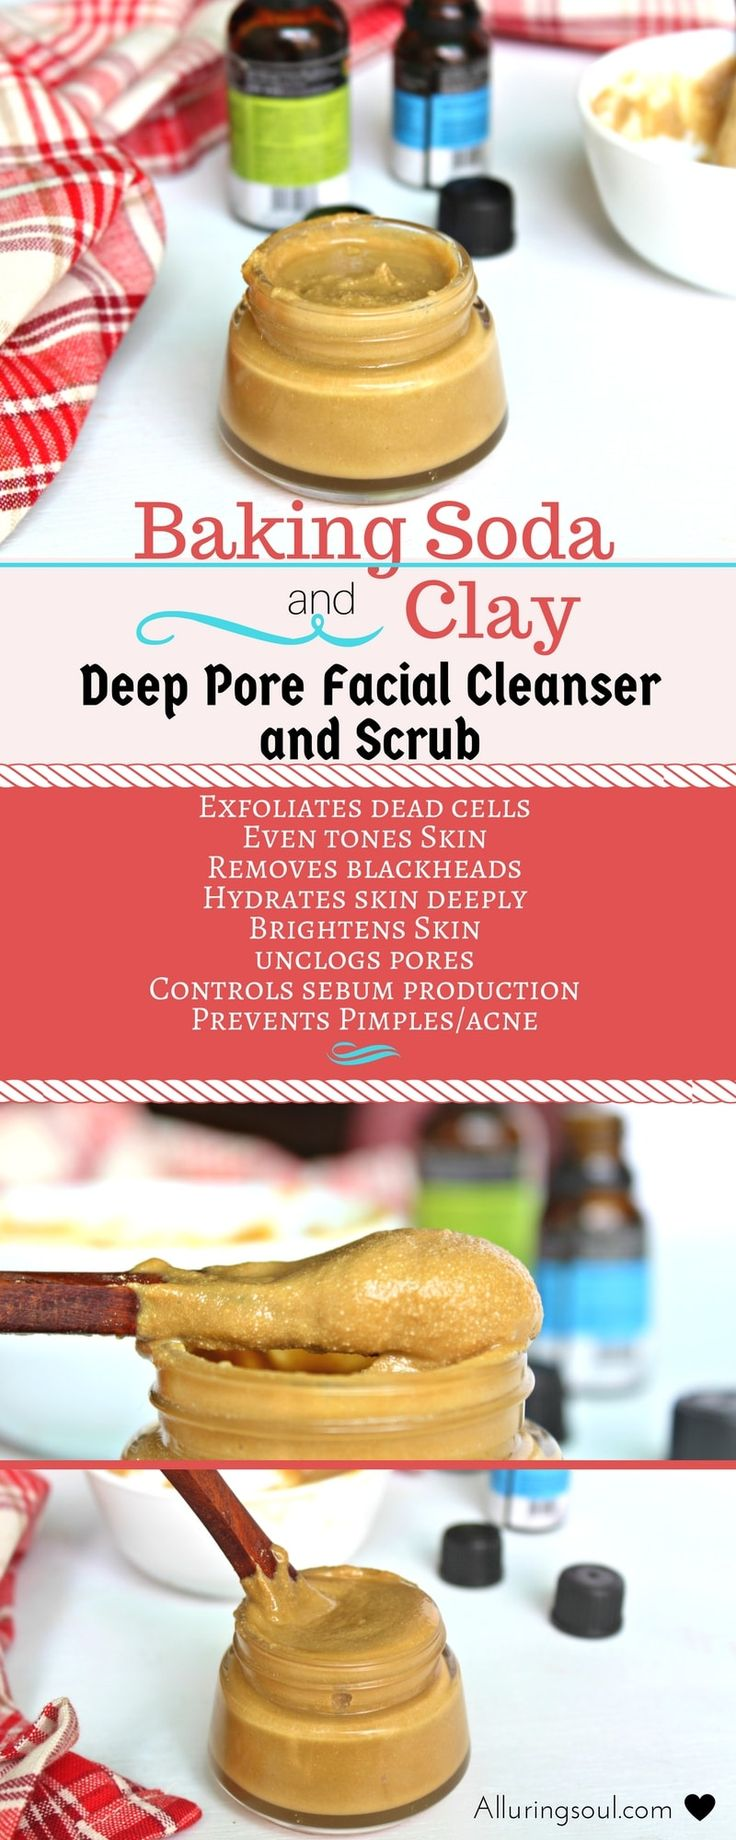 Baking soda and clay facial cleanser will provide essential nutrients to your skin and help heal your skin woes. It treats and heals acne, blackheads, removes scars and blemishes, brightens skin, exfoliates dead cells and makes it hydrated.